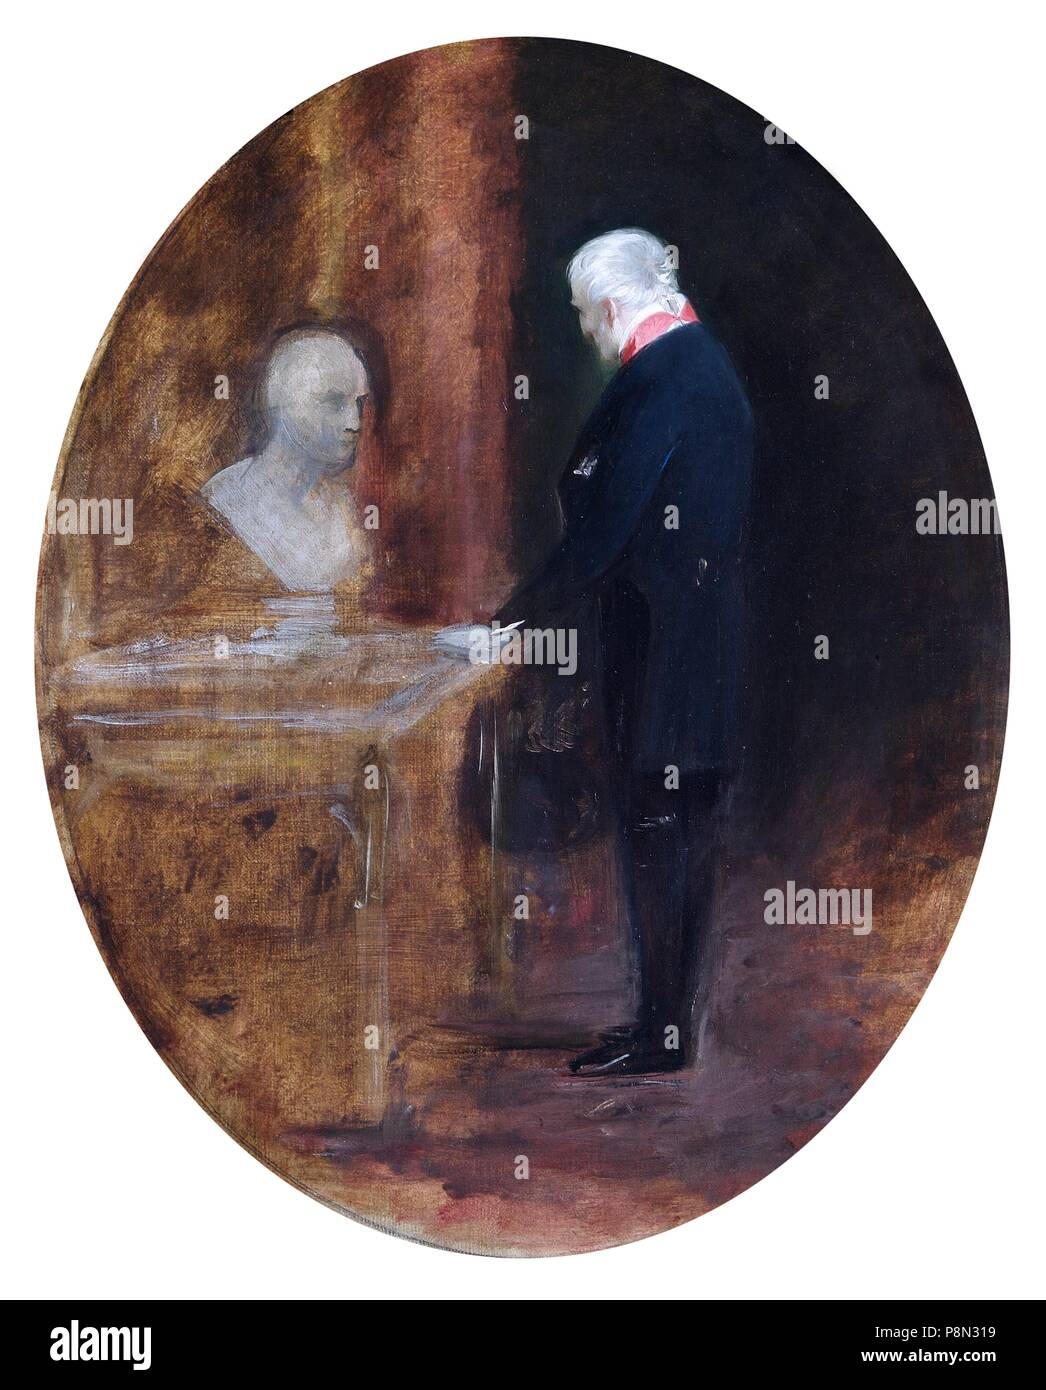 'The Duke of Wellington looking at bust of Napoleon', 19th century. Painting in Apsley House, London. - Stock Image